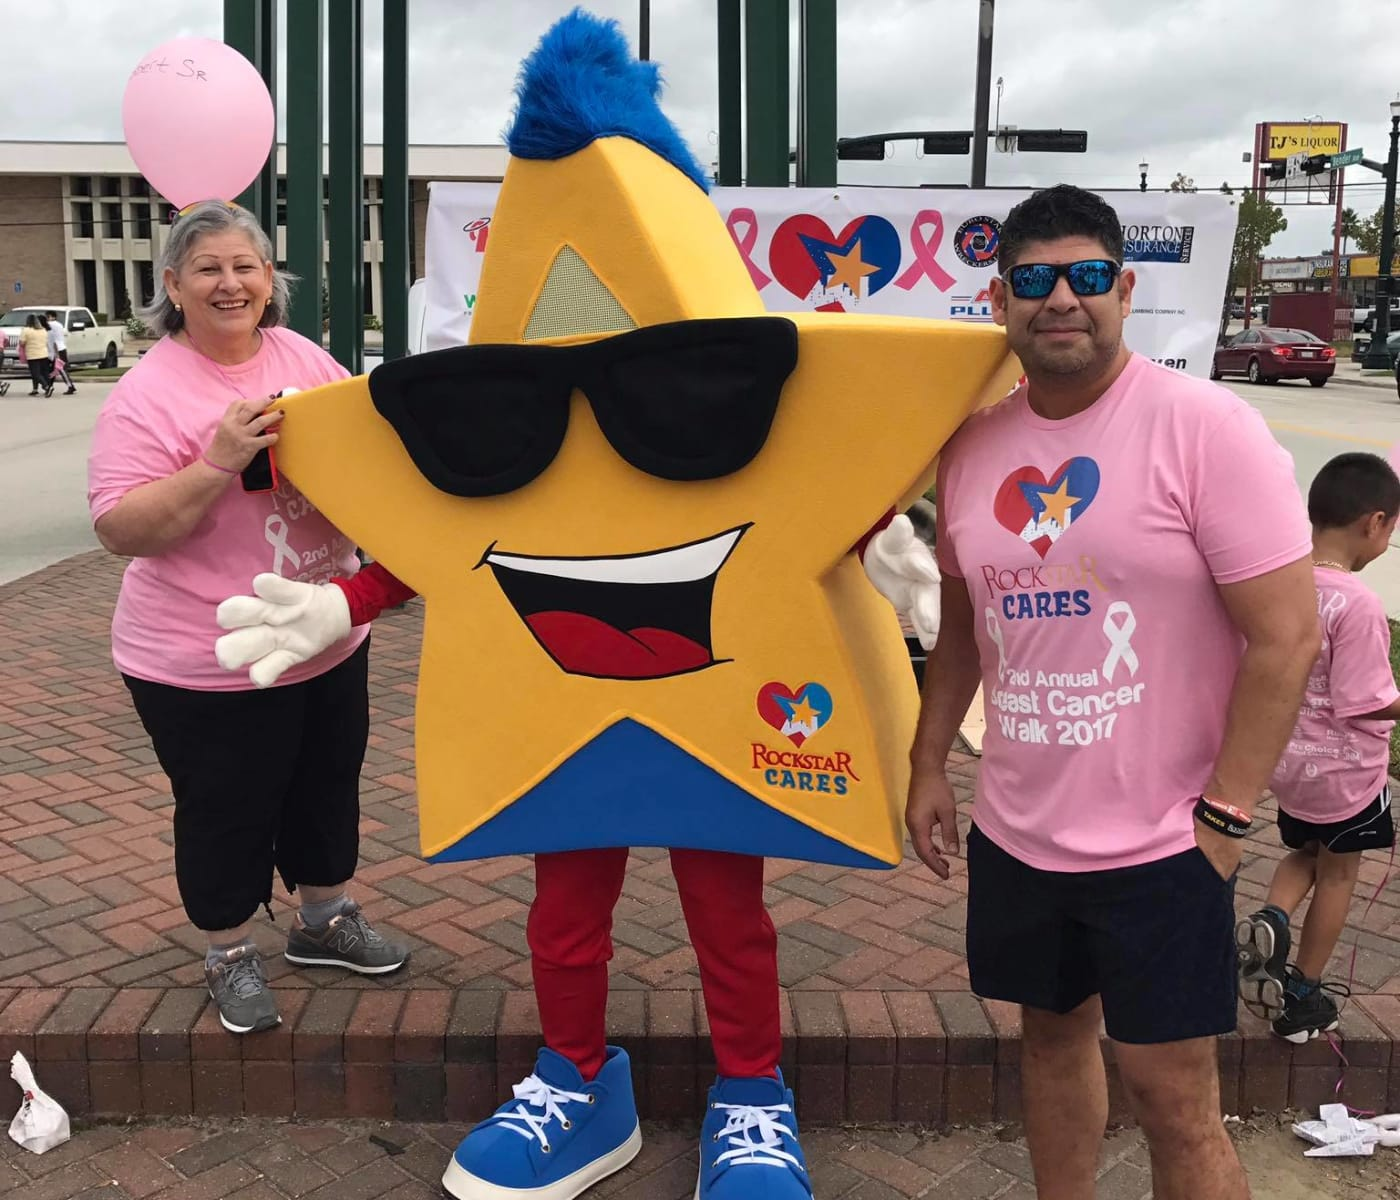 Rockstar Capital walking for breast cancer